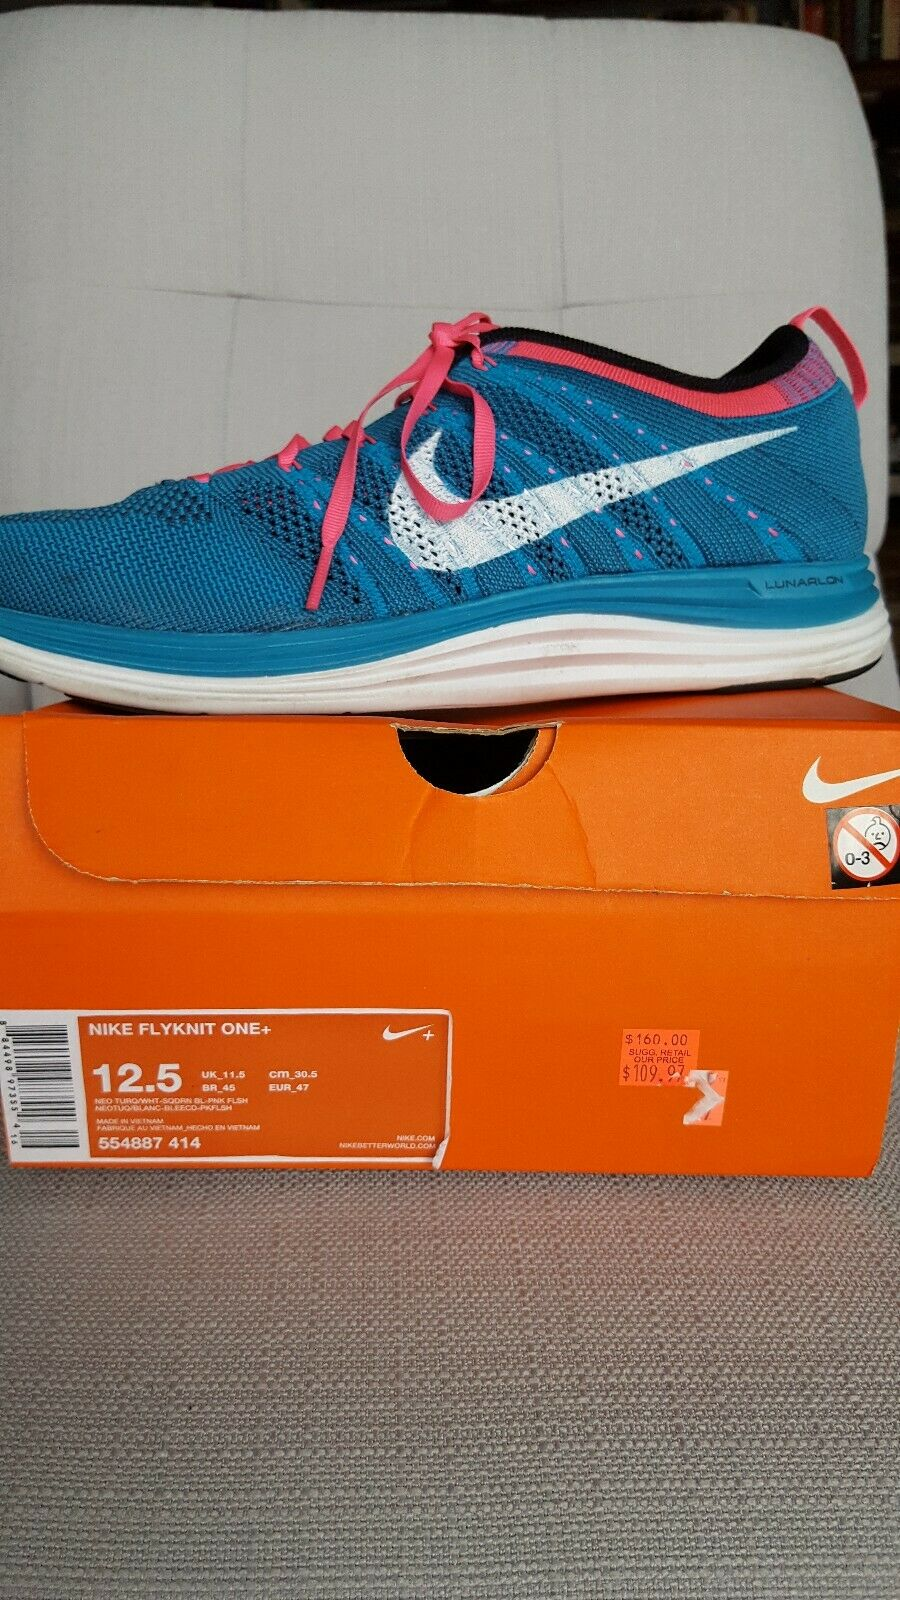 Men's NIKE  Flyknit One  Running shoes, Size 12.5, Neo Turquoise White Pink